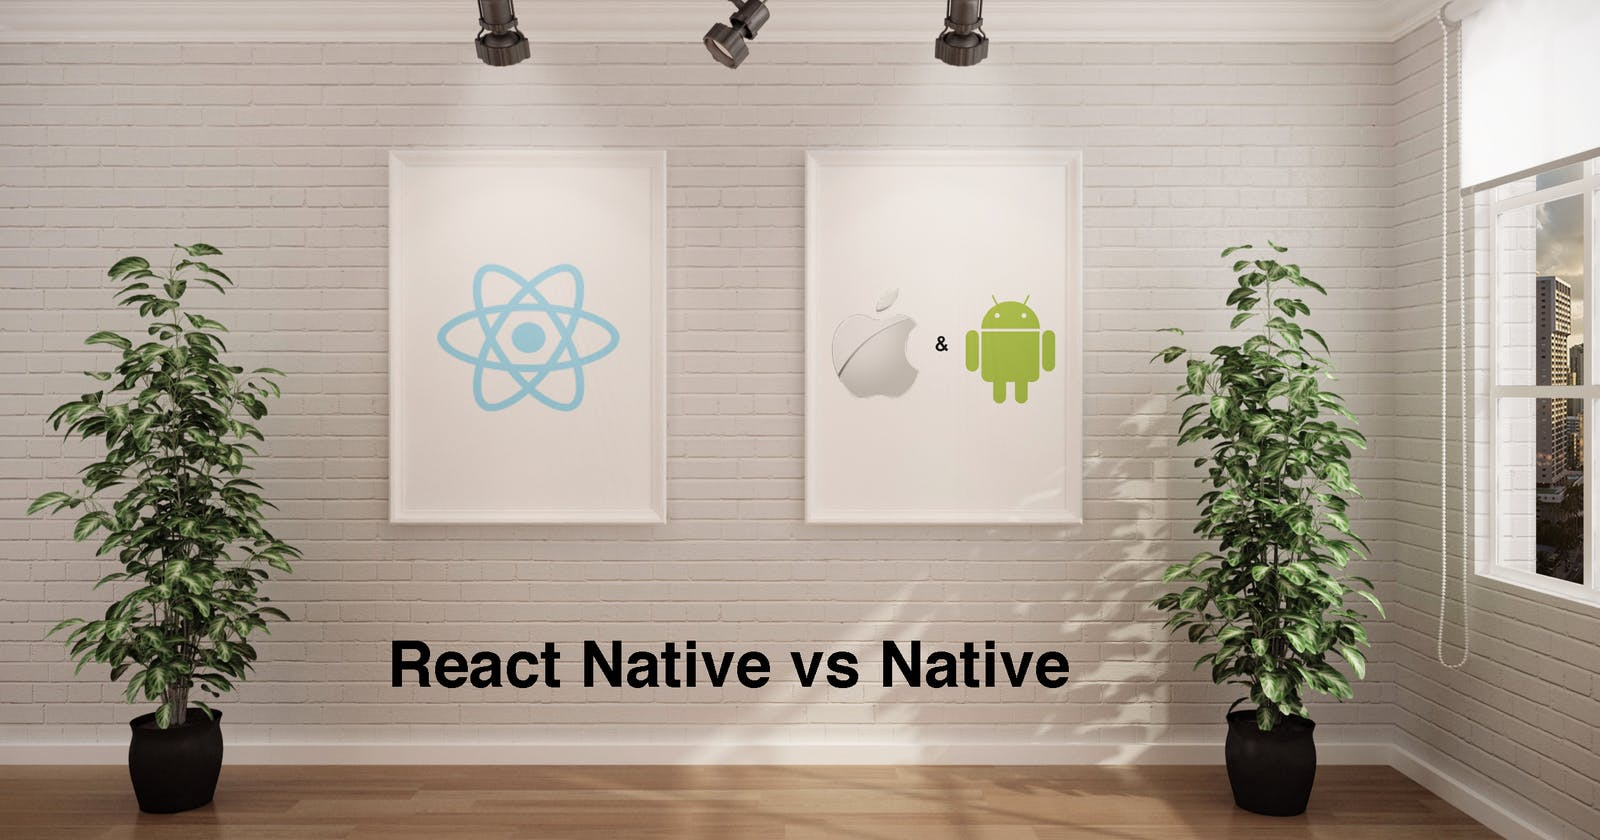 3 Key Differences Between React Native and Native Development